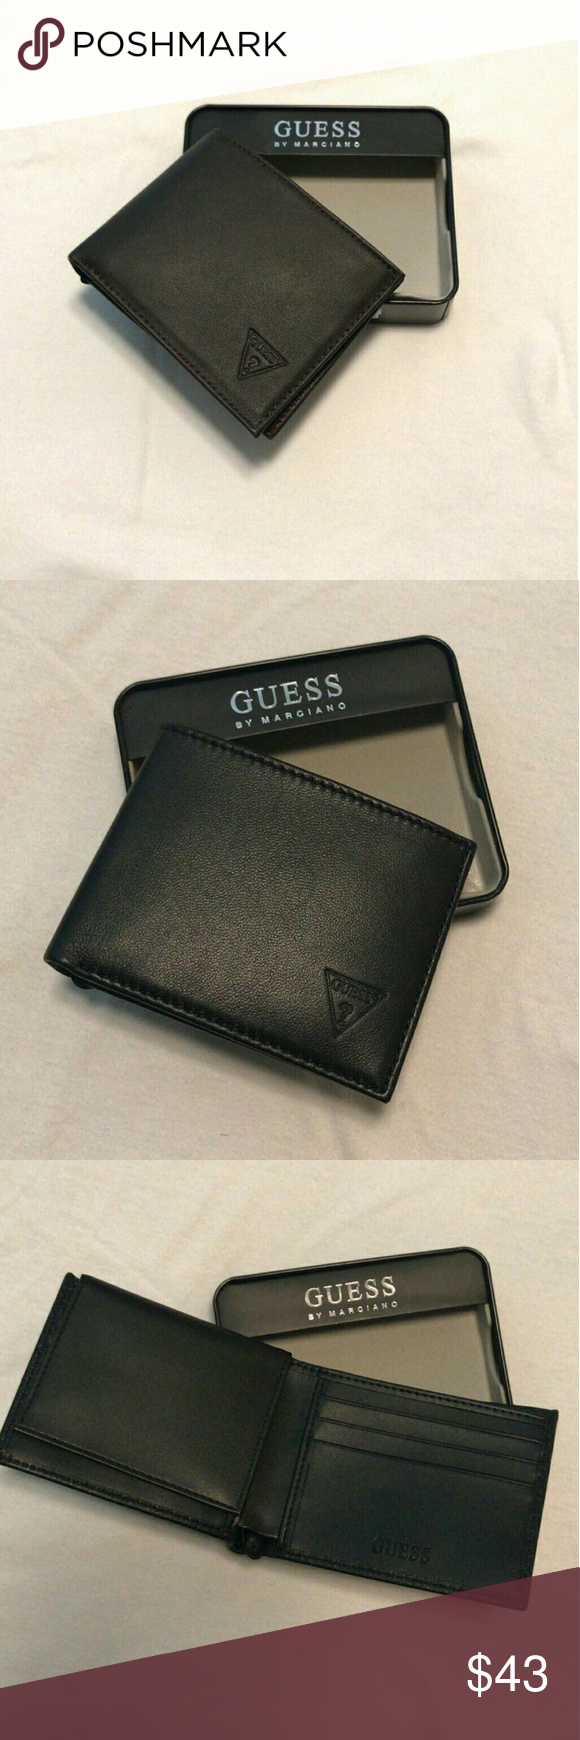 authentic GUESS leather wallet new in box Brand new in box 70e9b5cd74d74